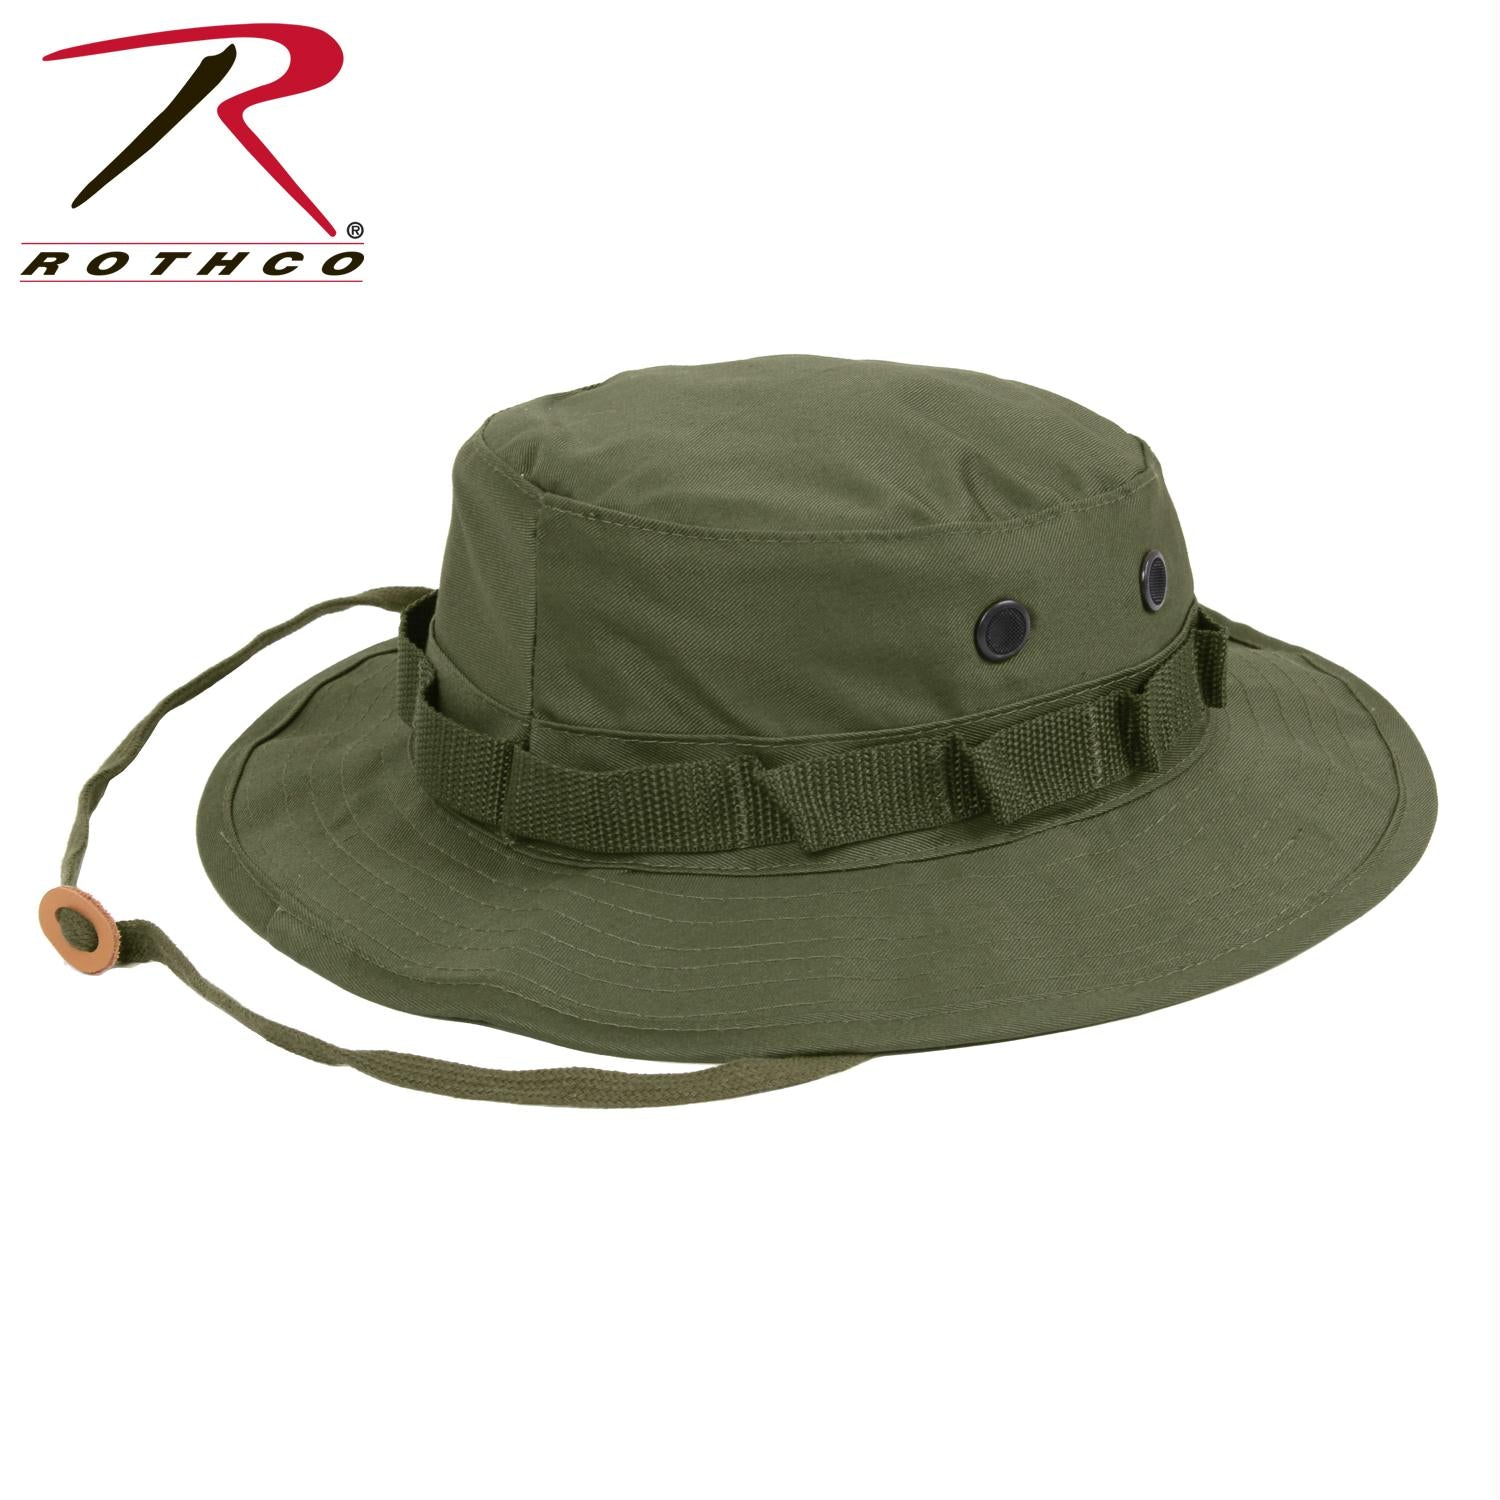 Rothco Boonie Hat - Olive Drab / 6 3/4